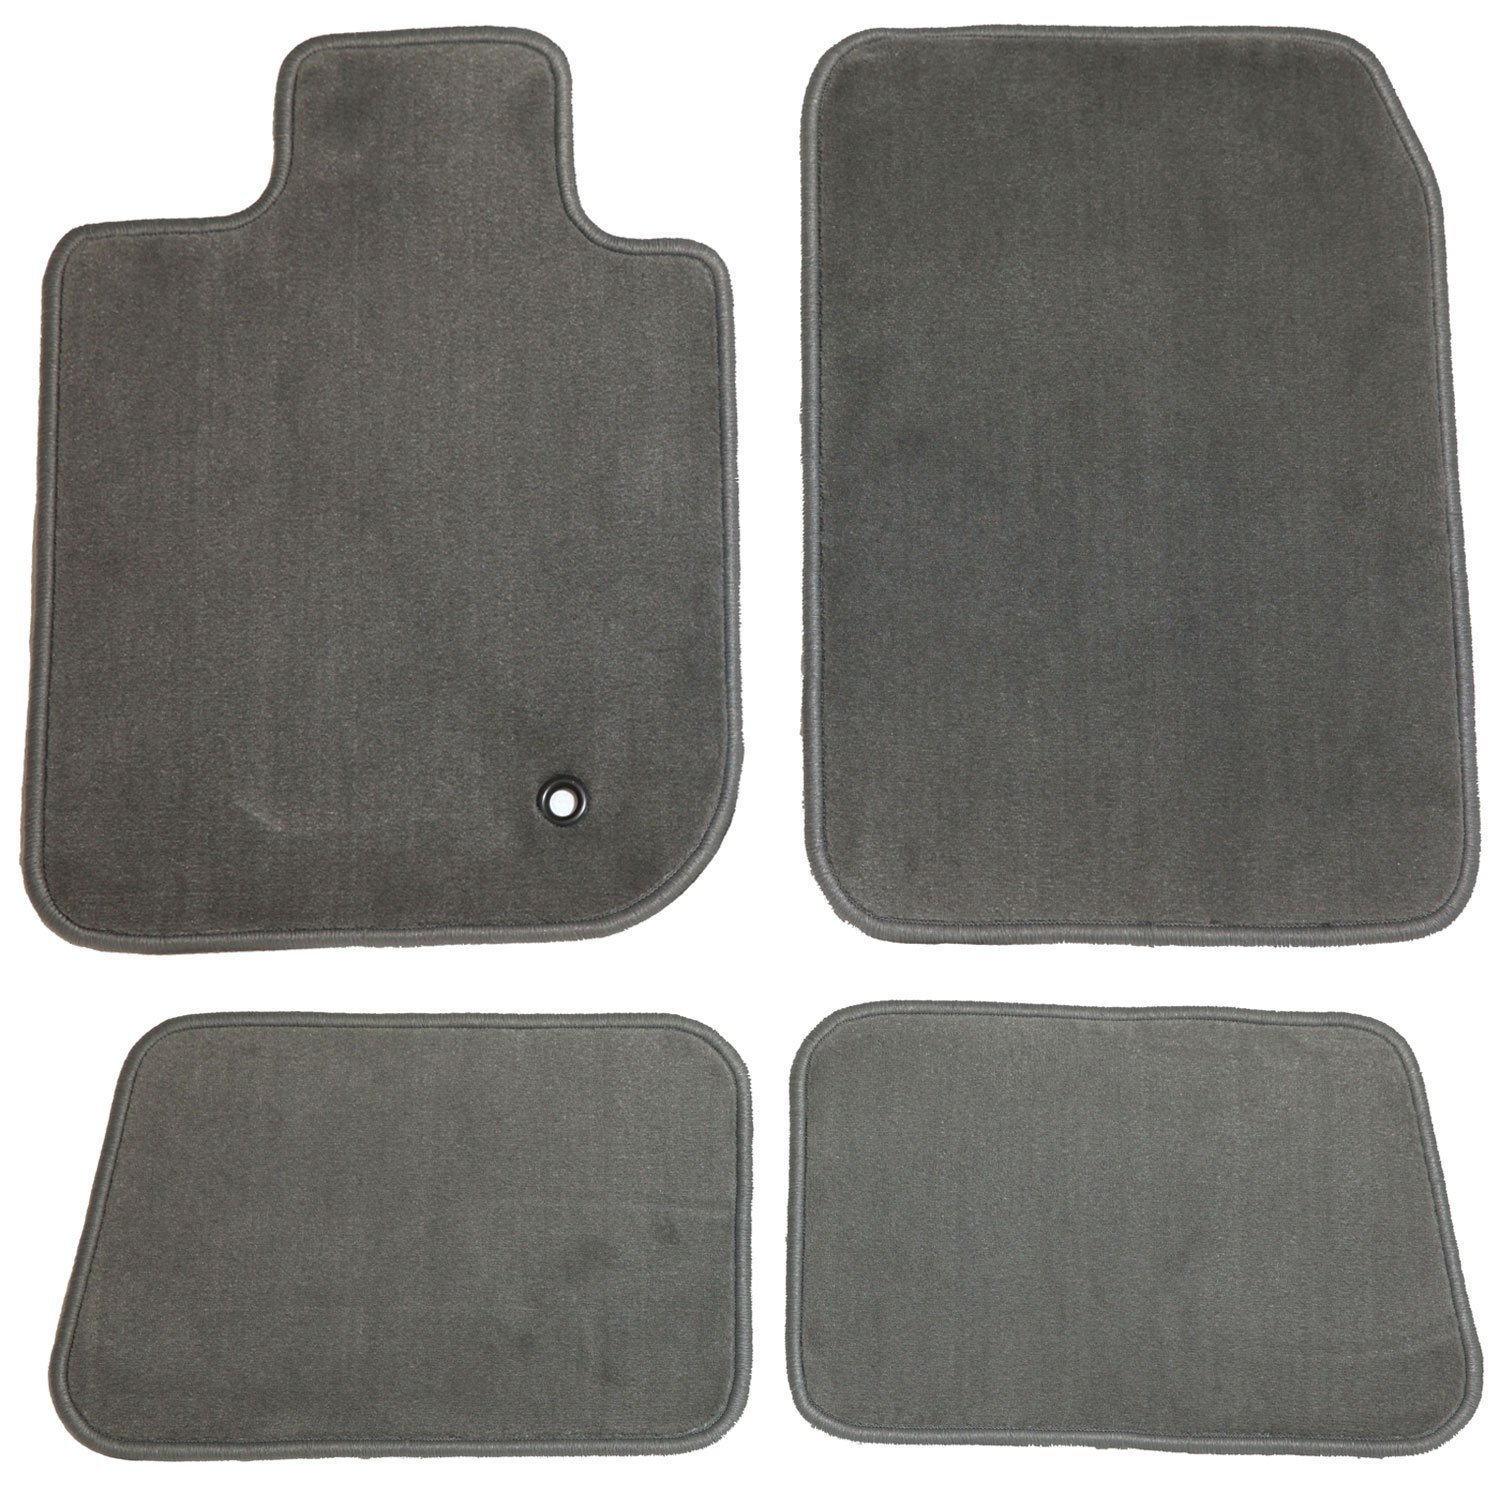 1998 2000 GGBAILEY D4684A-S2B-GY-LP Custom Fit Automotive Carpet Floor Mats for 1997 2002 2003 Ford F-150 4 Door//SuperCab Grey Loop Driver Passenger /& Rear 2001 1999